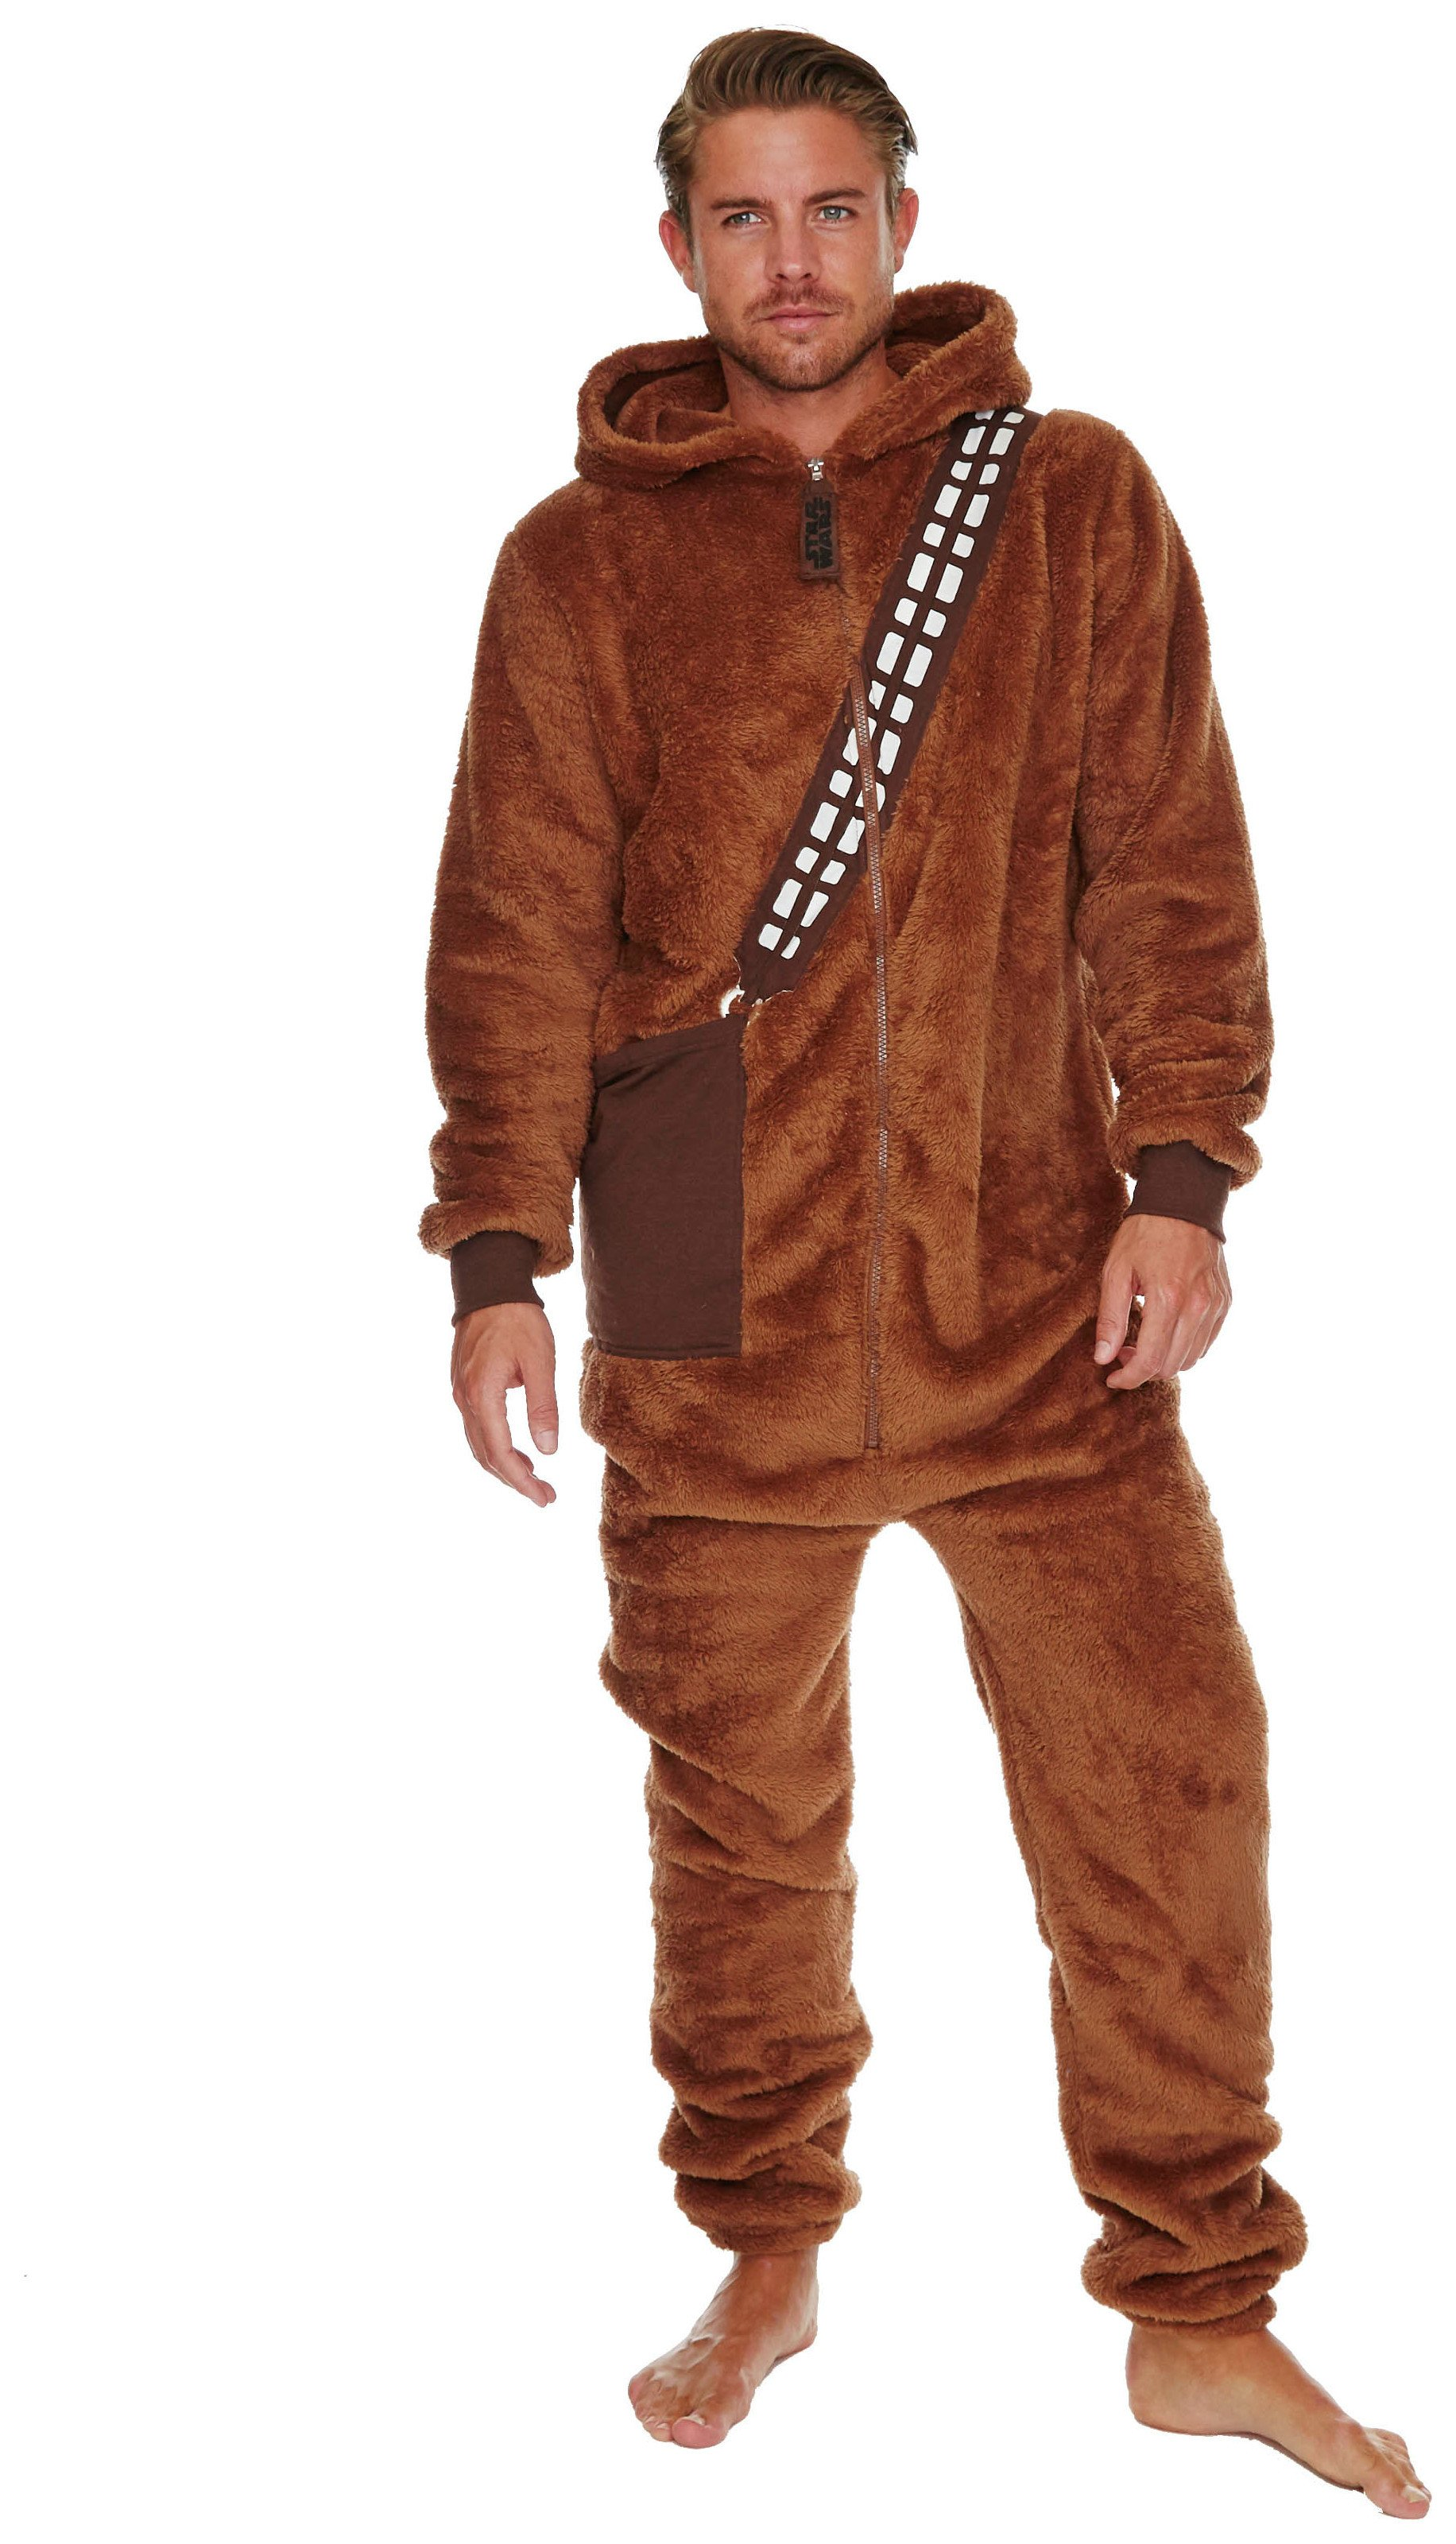 Star Wars Chewbacca Onesie - Large